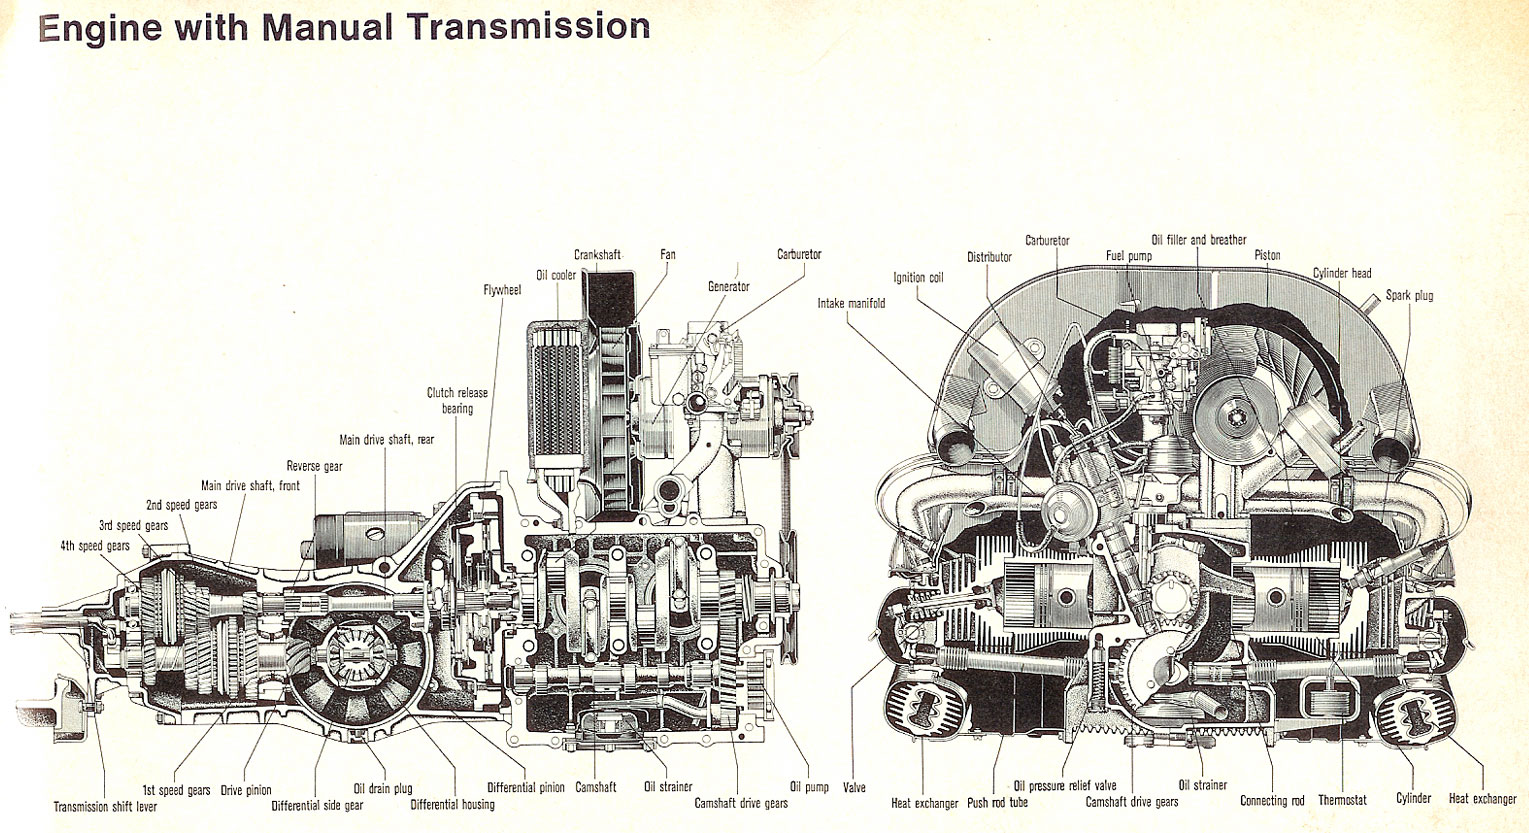 raio-x: motor vw fusca | fórmula total 2006 volkswagen beetle engine diagram volkswagen beetle engine diagram